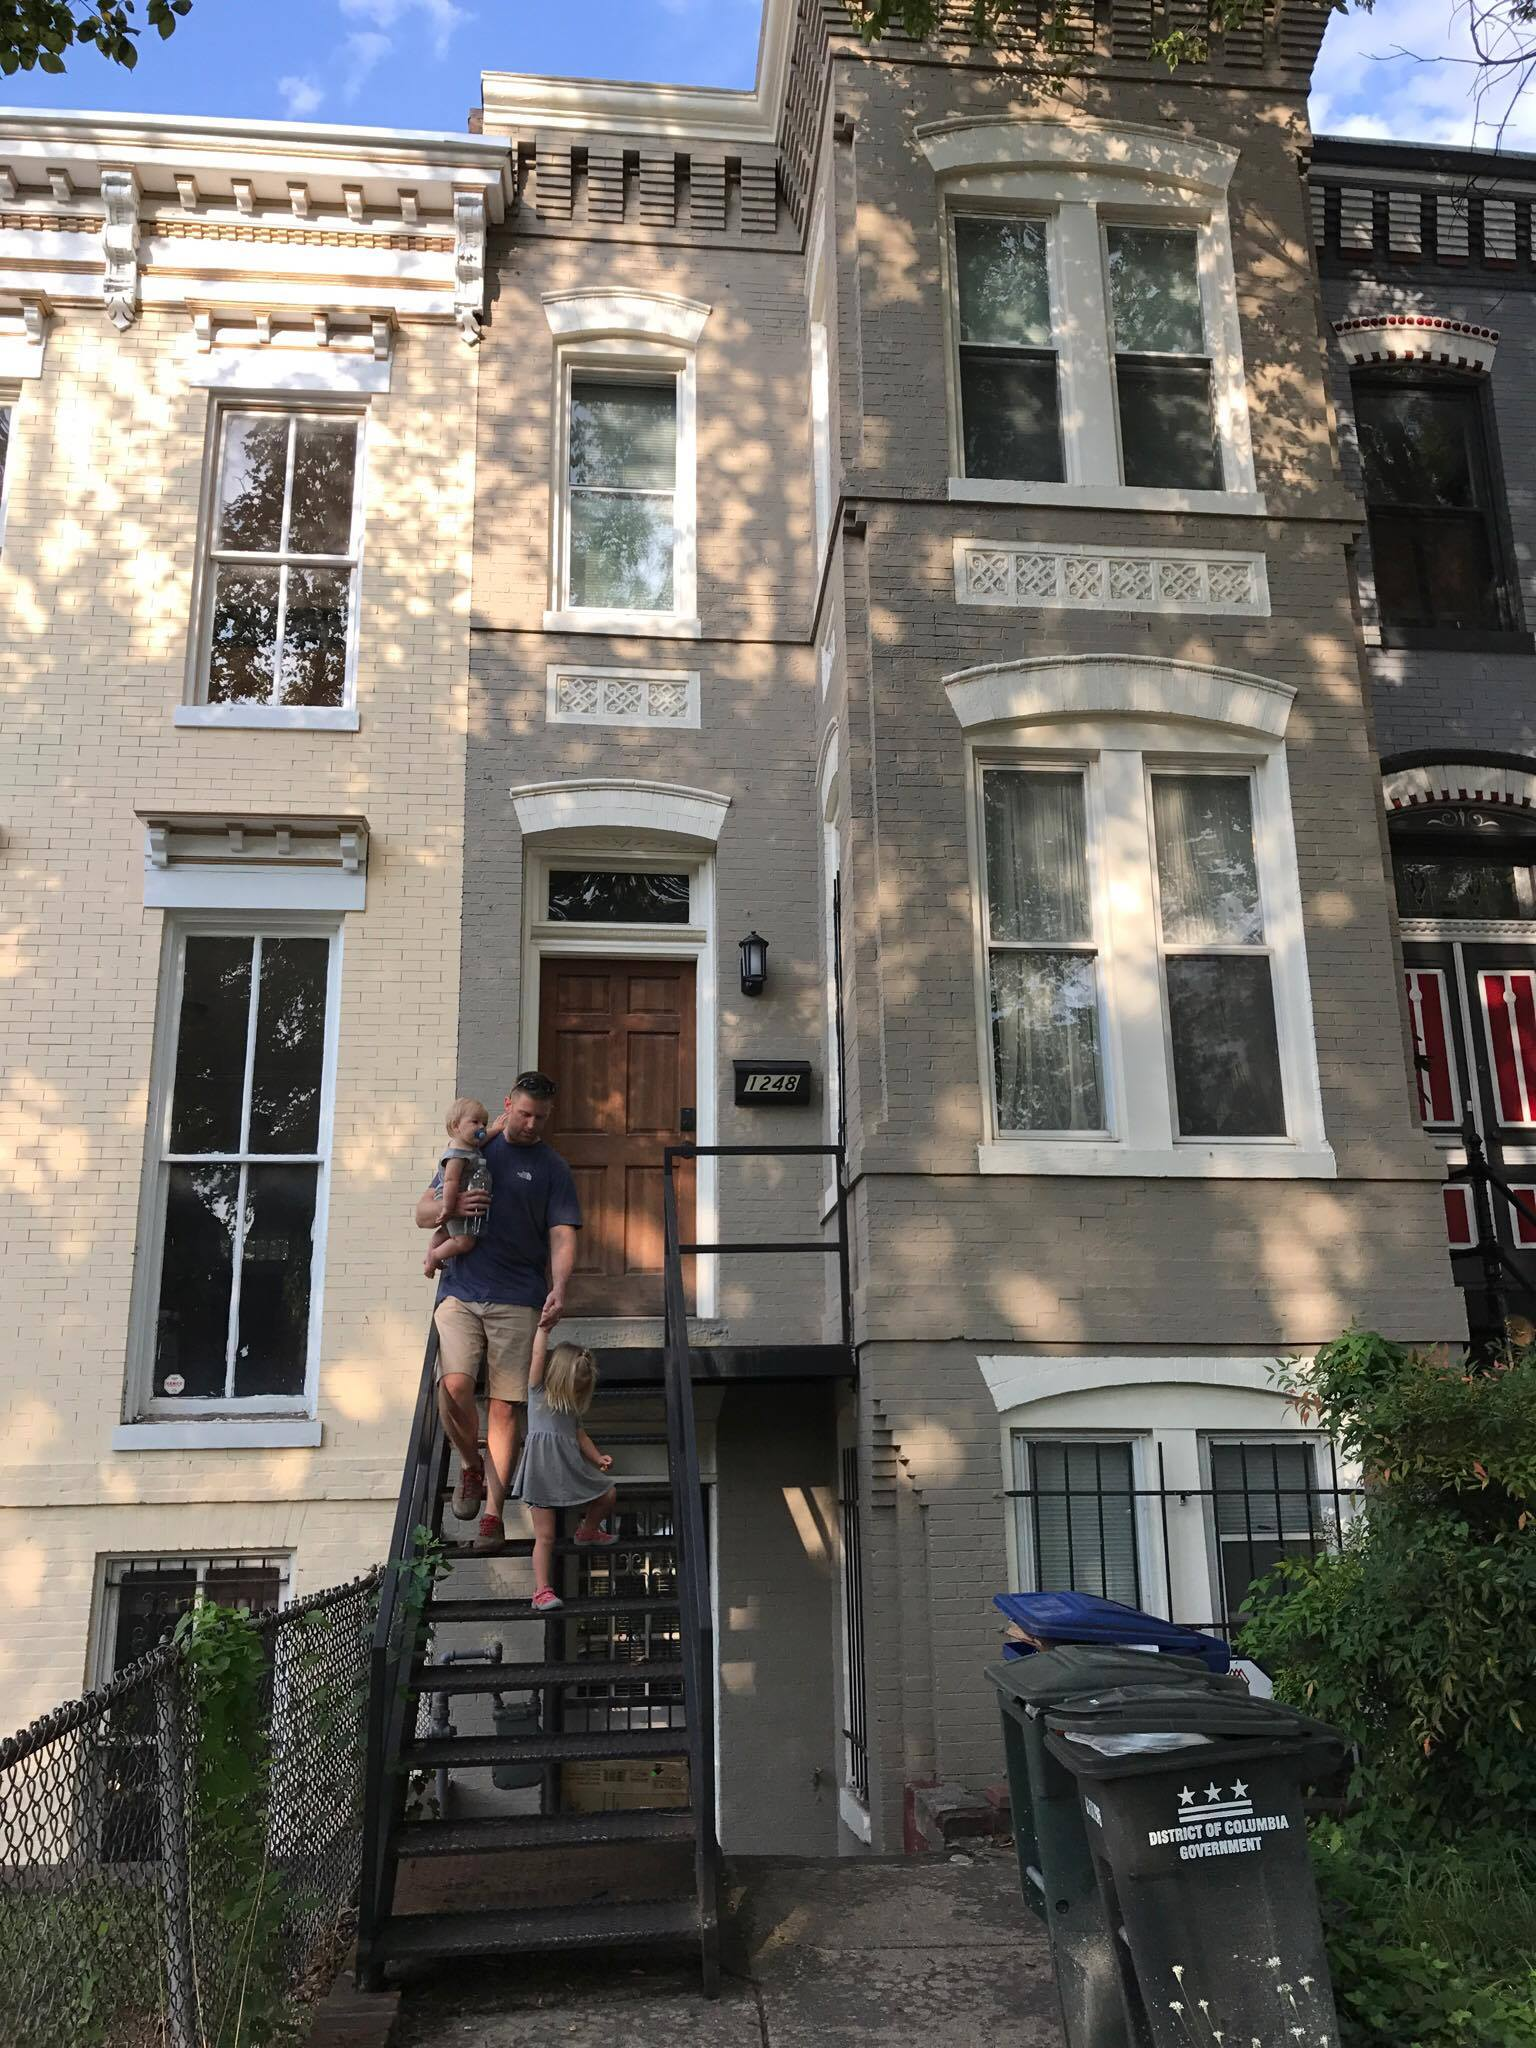 This was our super cool washington DC Airbnb -- an authentic row house - came with a free parking spot too! (Click image to see listing)